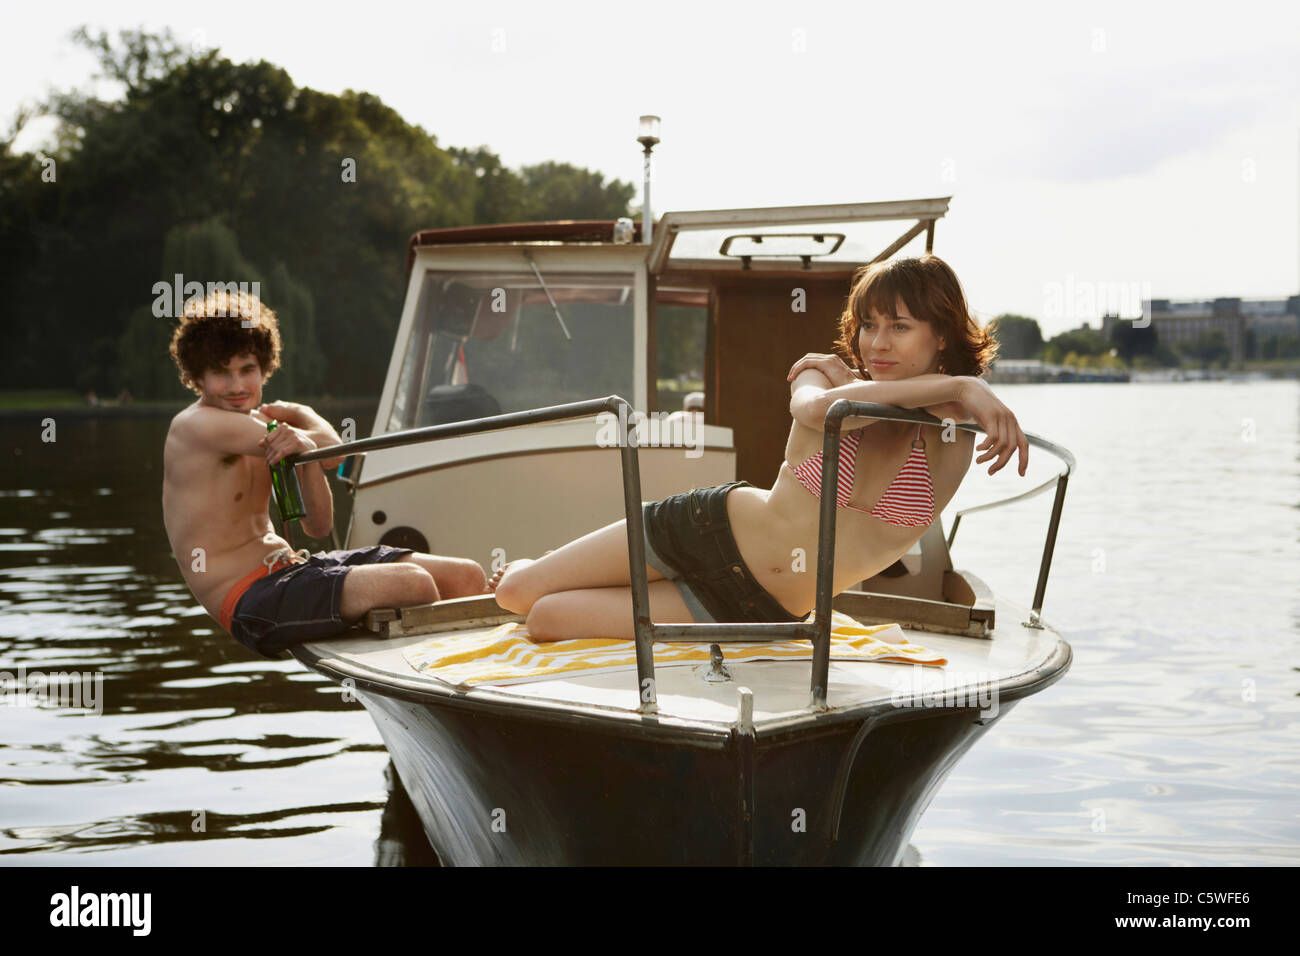 Germany, Berlin, Young couple on motor boat - Stock Image